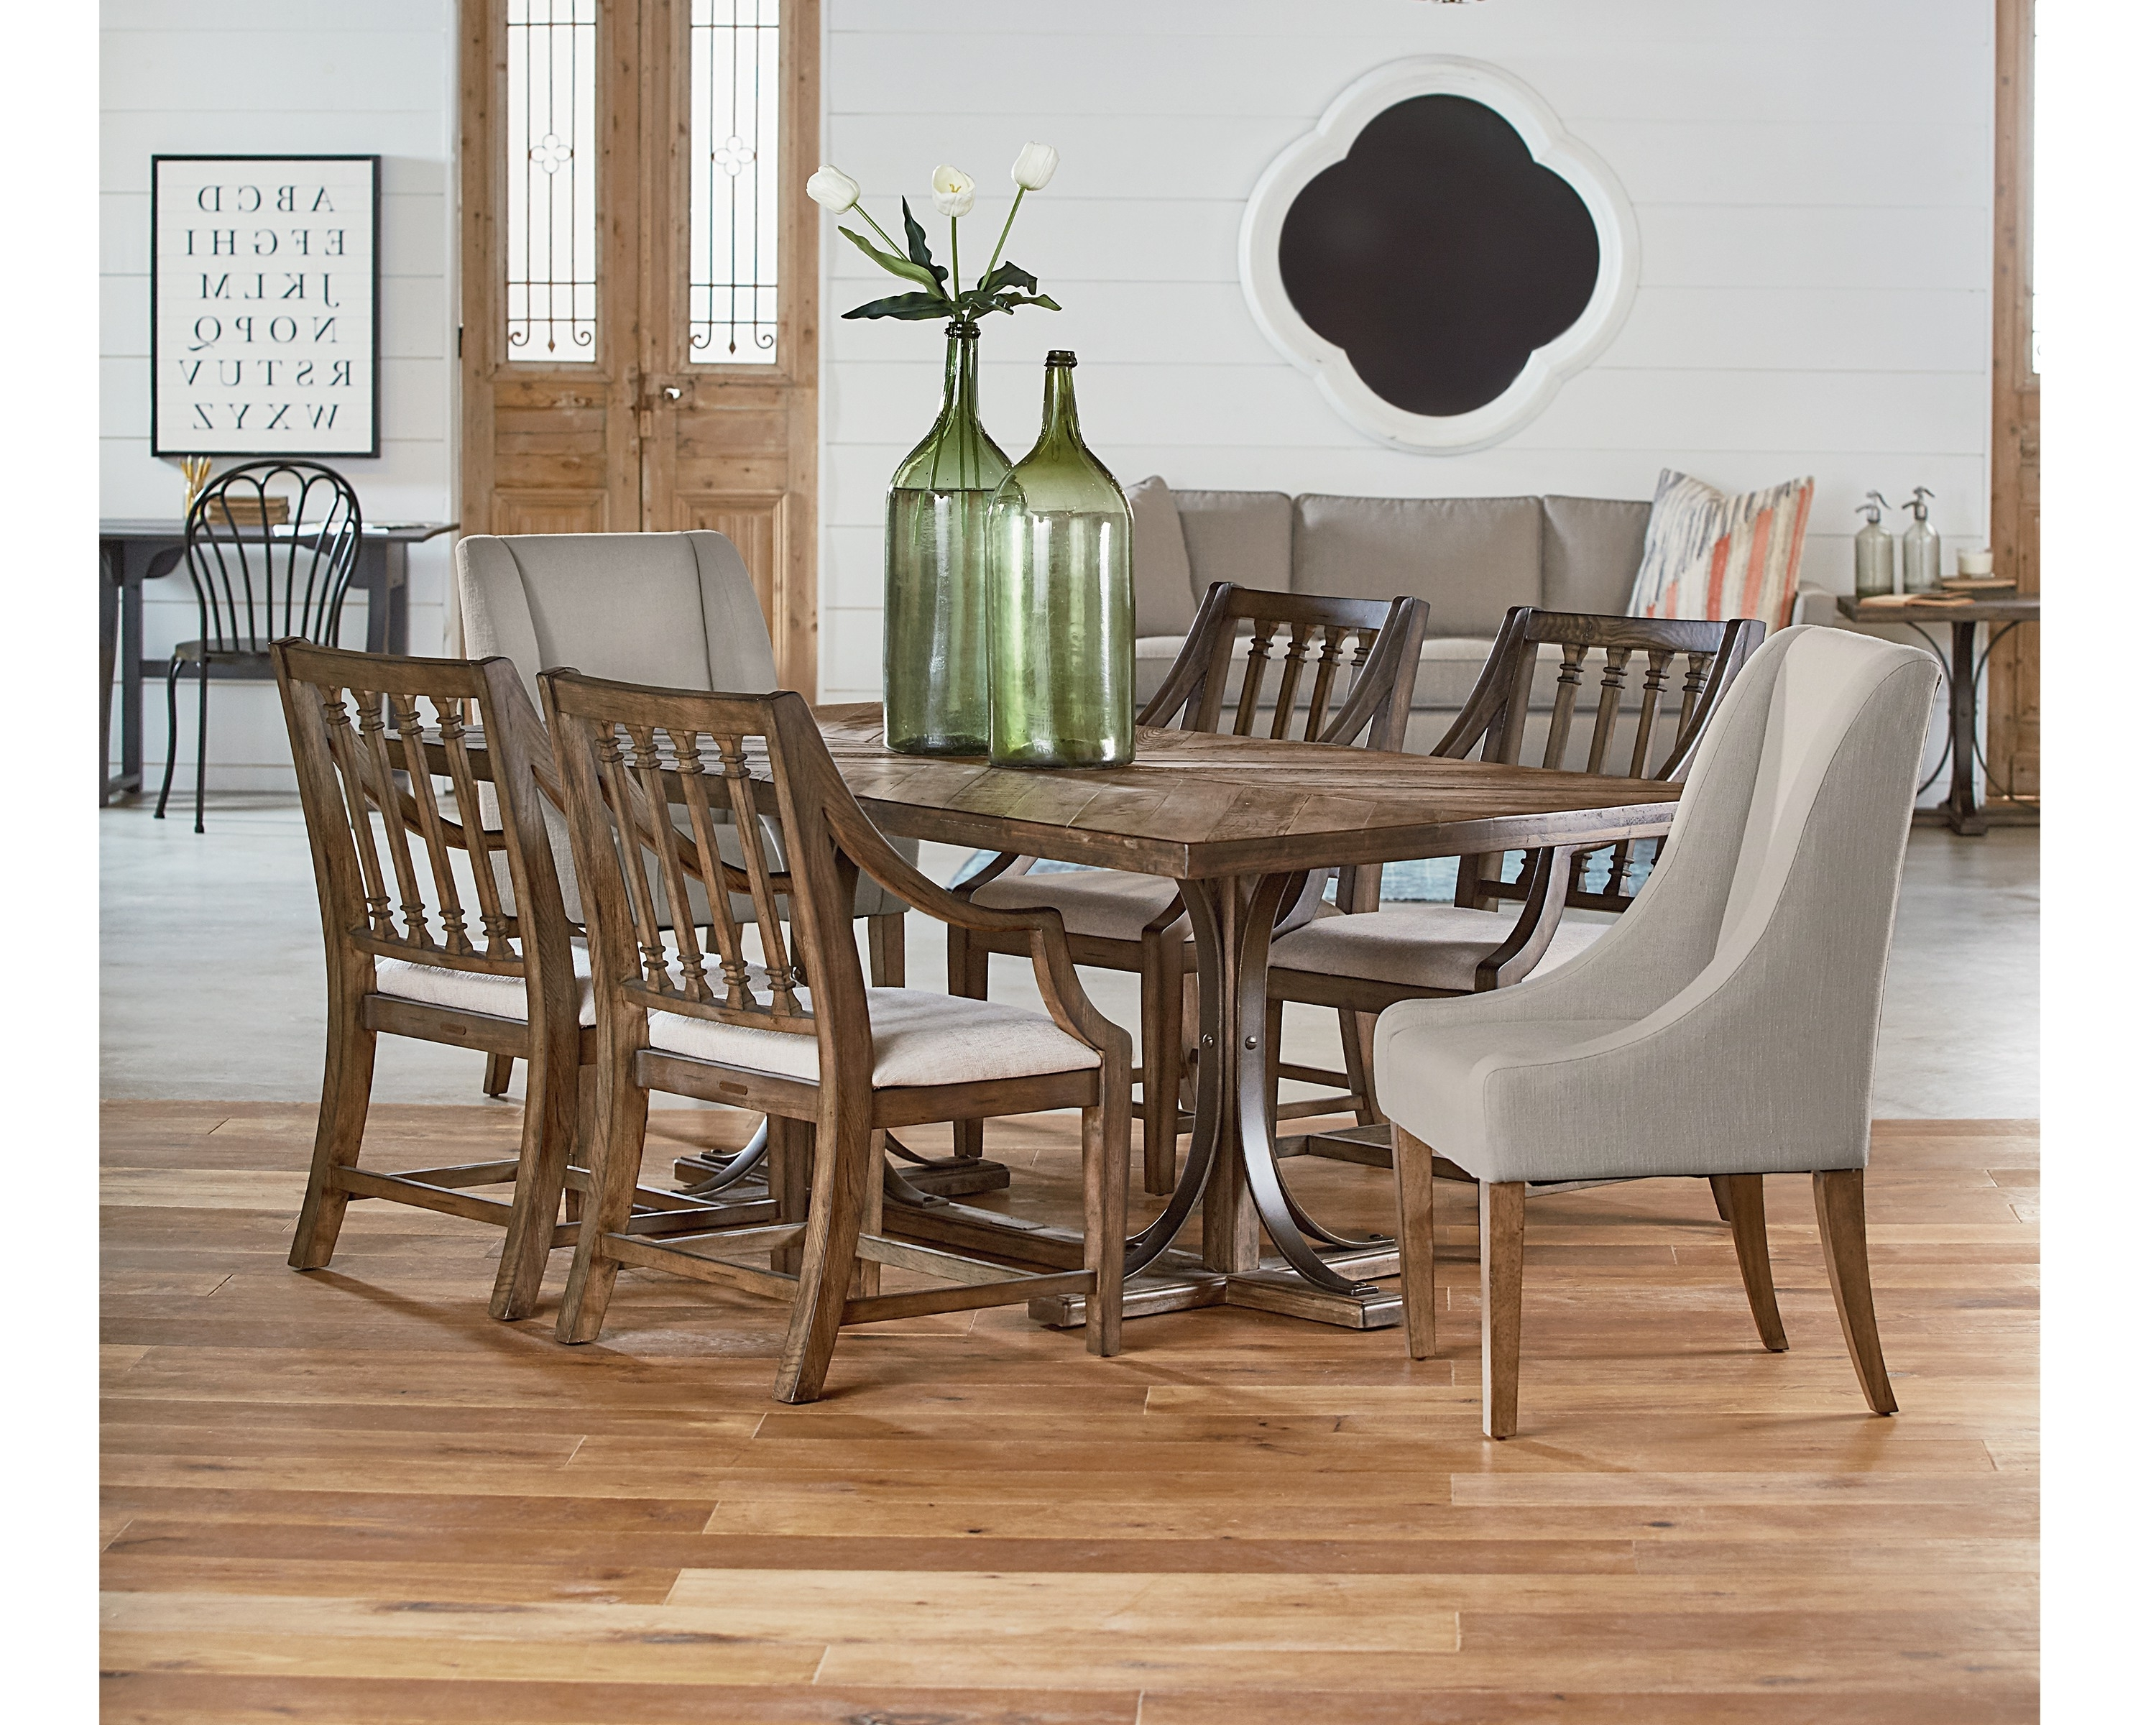 Most Recent Iron Trestle + Revival – Magnolia Home With Regard To Magnolia Home Revival Side Chairs (View 3 of 20)